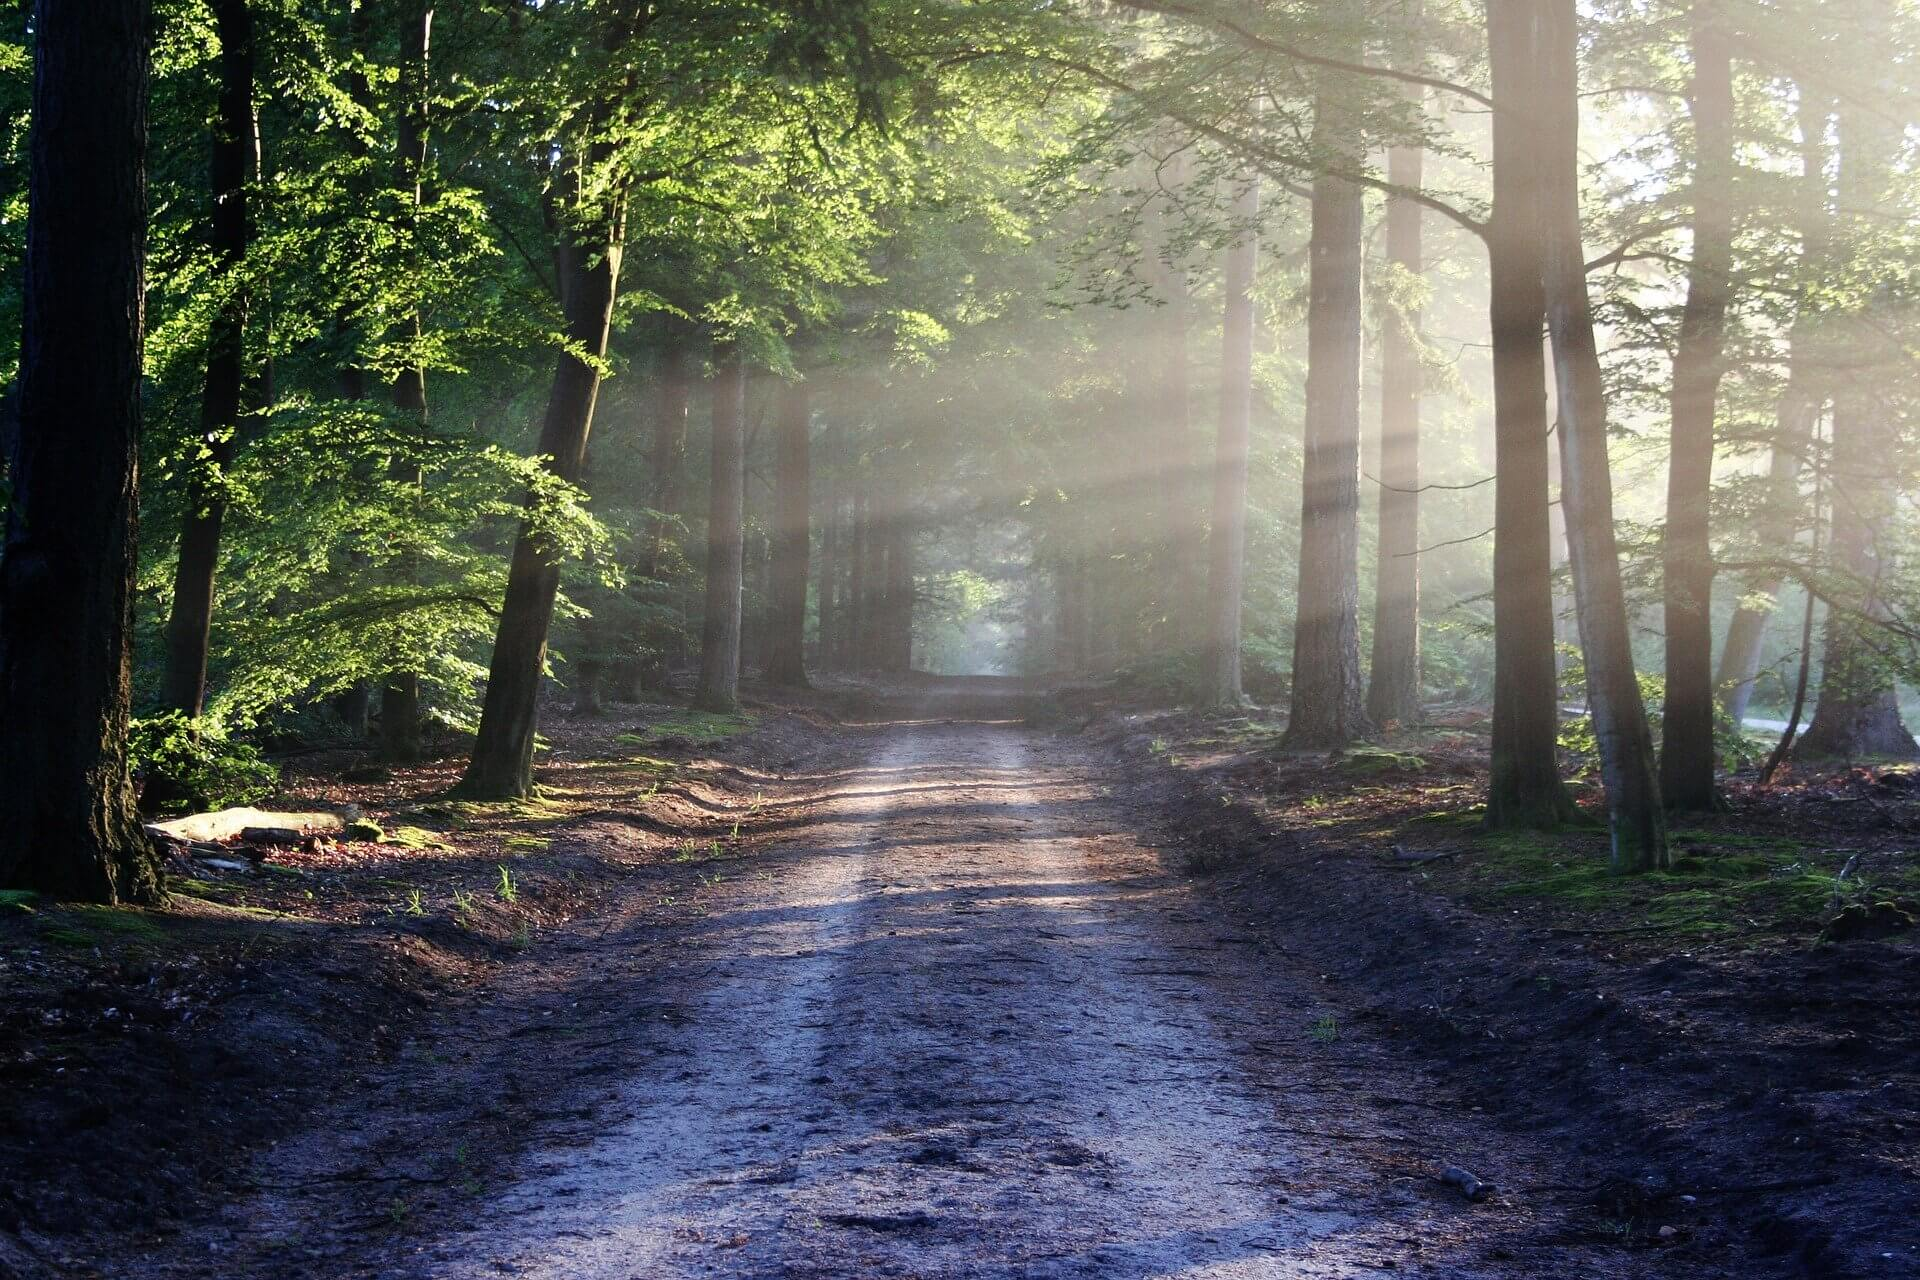 A road runs through a forest, stretching off into the distance